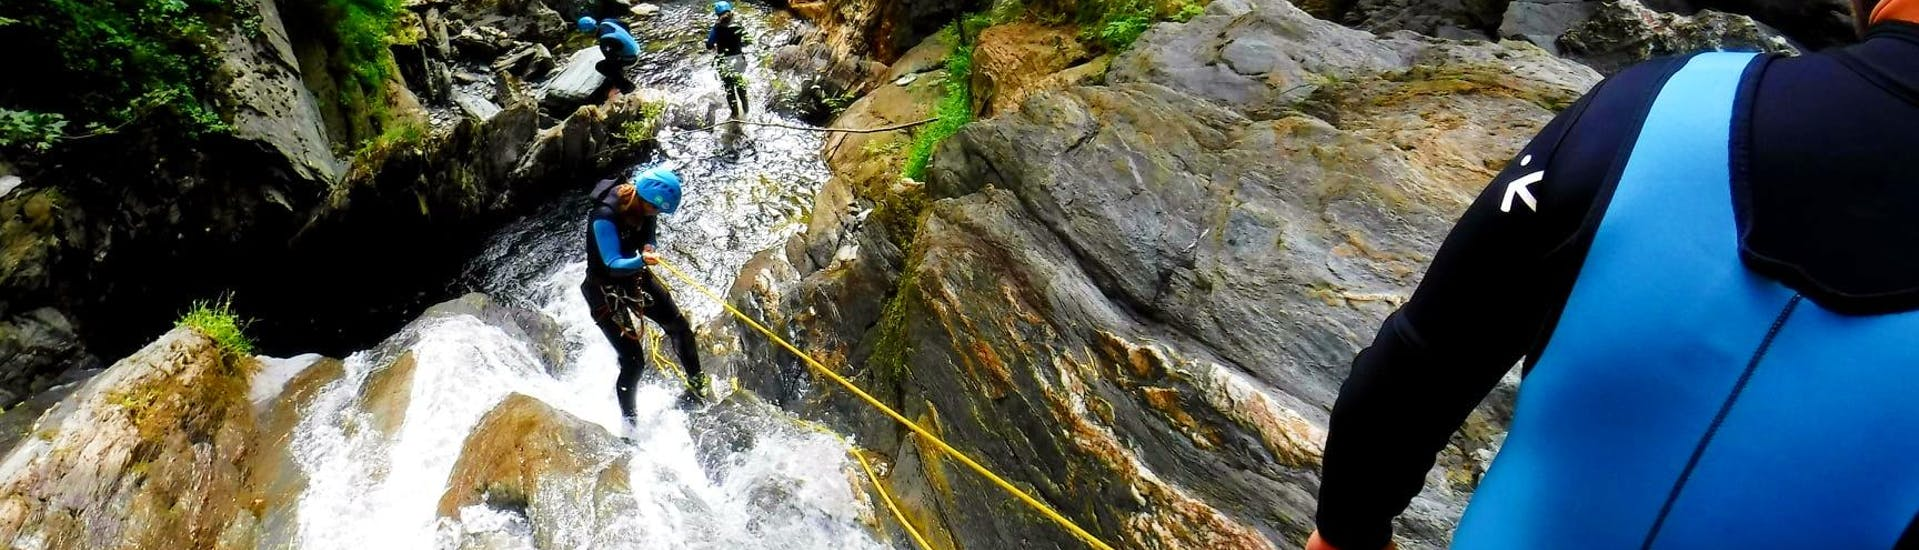 A participant is roping down a waterfall during her Canyoning in the Rettenbach - Online with FROST.